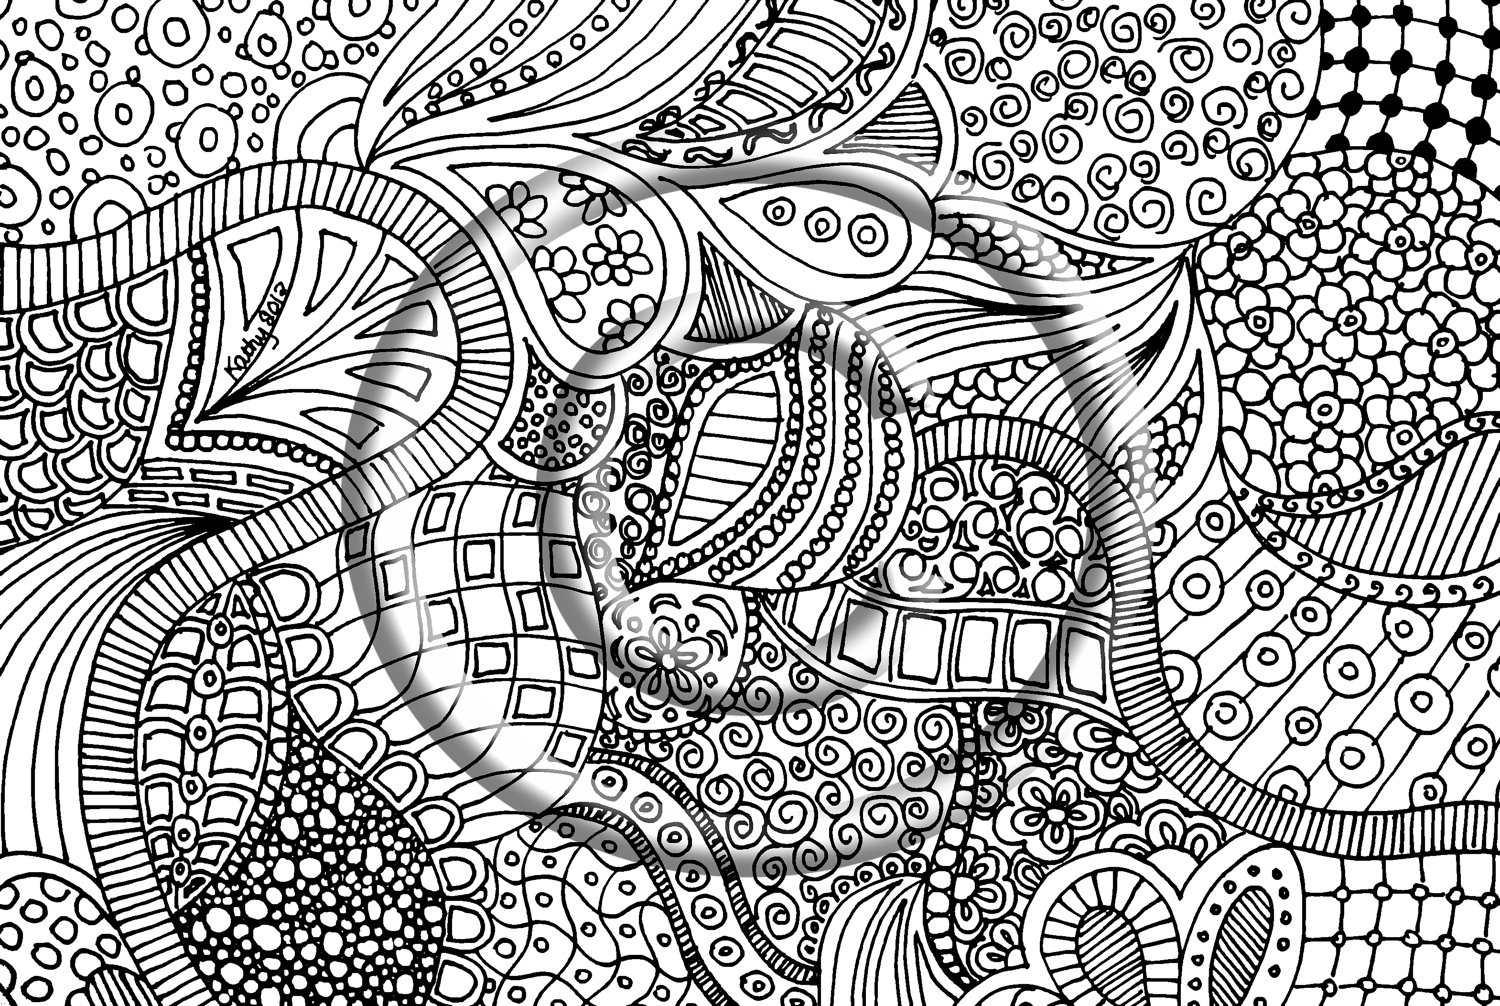 zentangle coloring pages free printable abstract doodle zentangle paisley coloring pages colouring coloring printable zentangle free pages